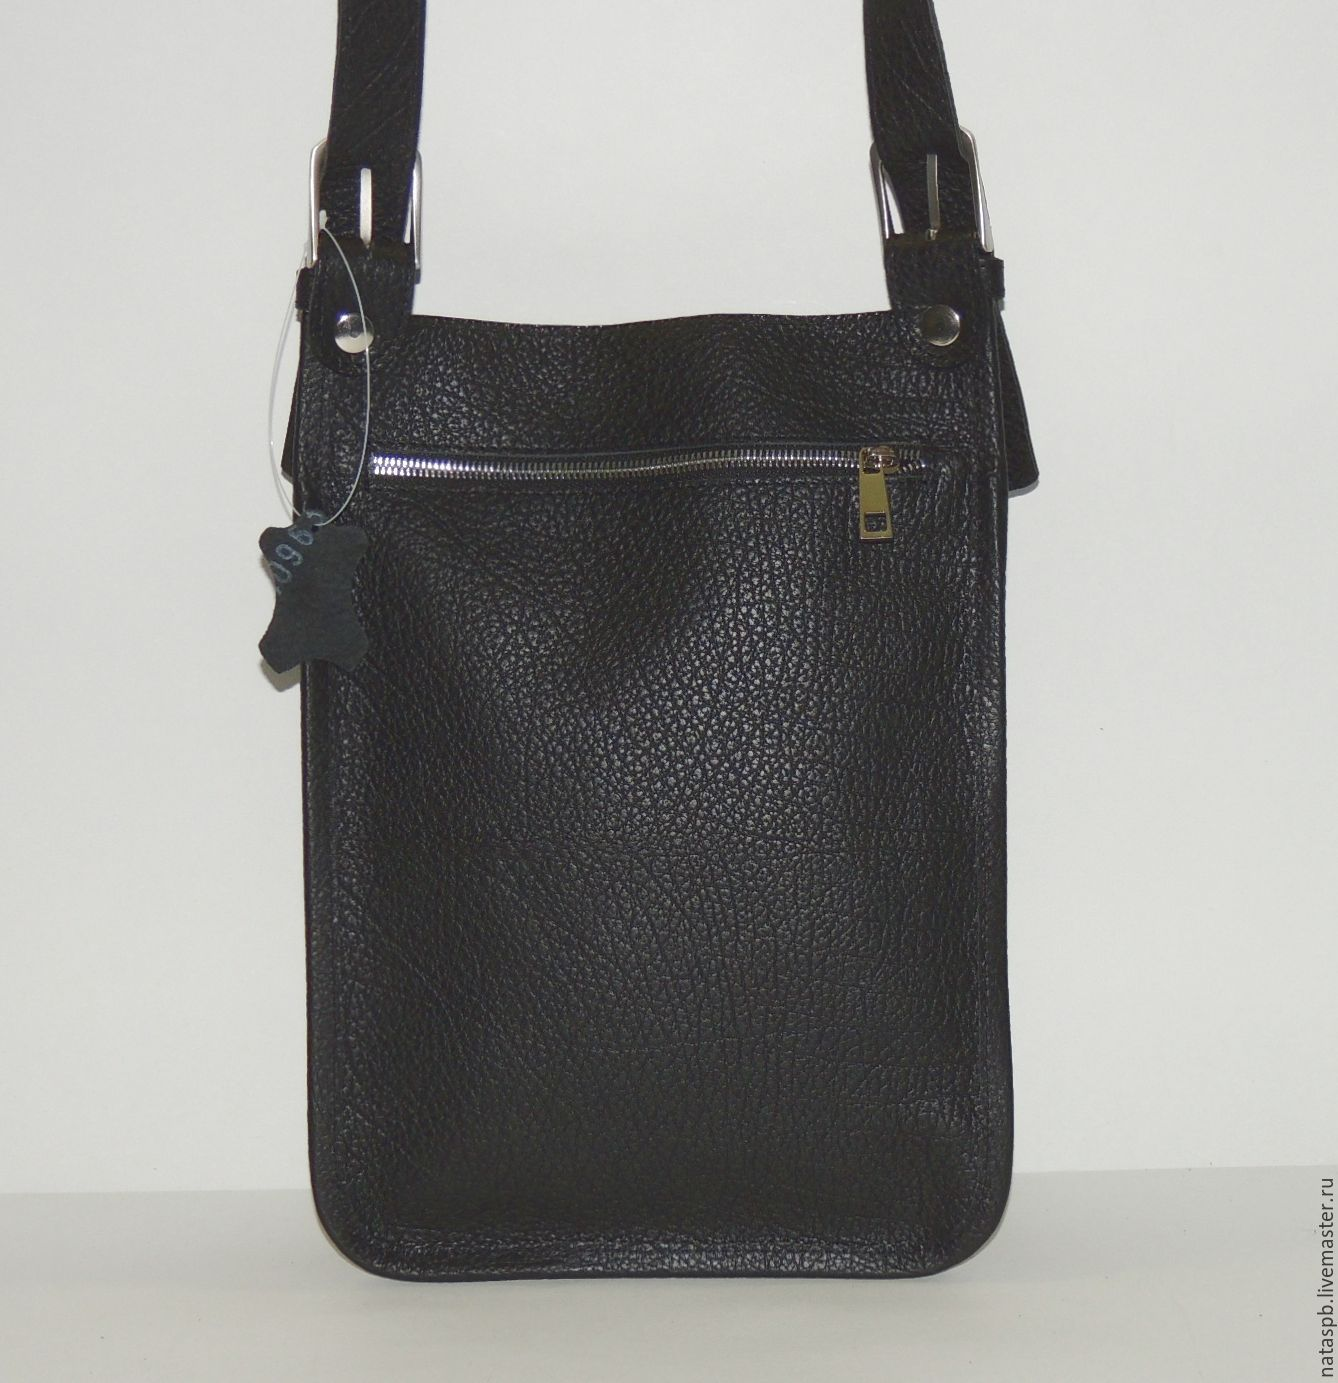 Leather Handbags Handbag Online Bag Male